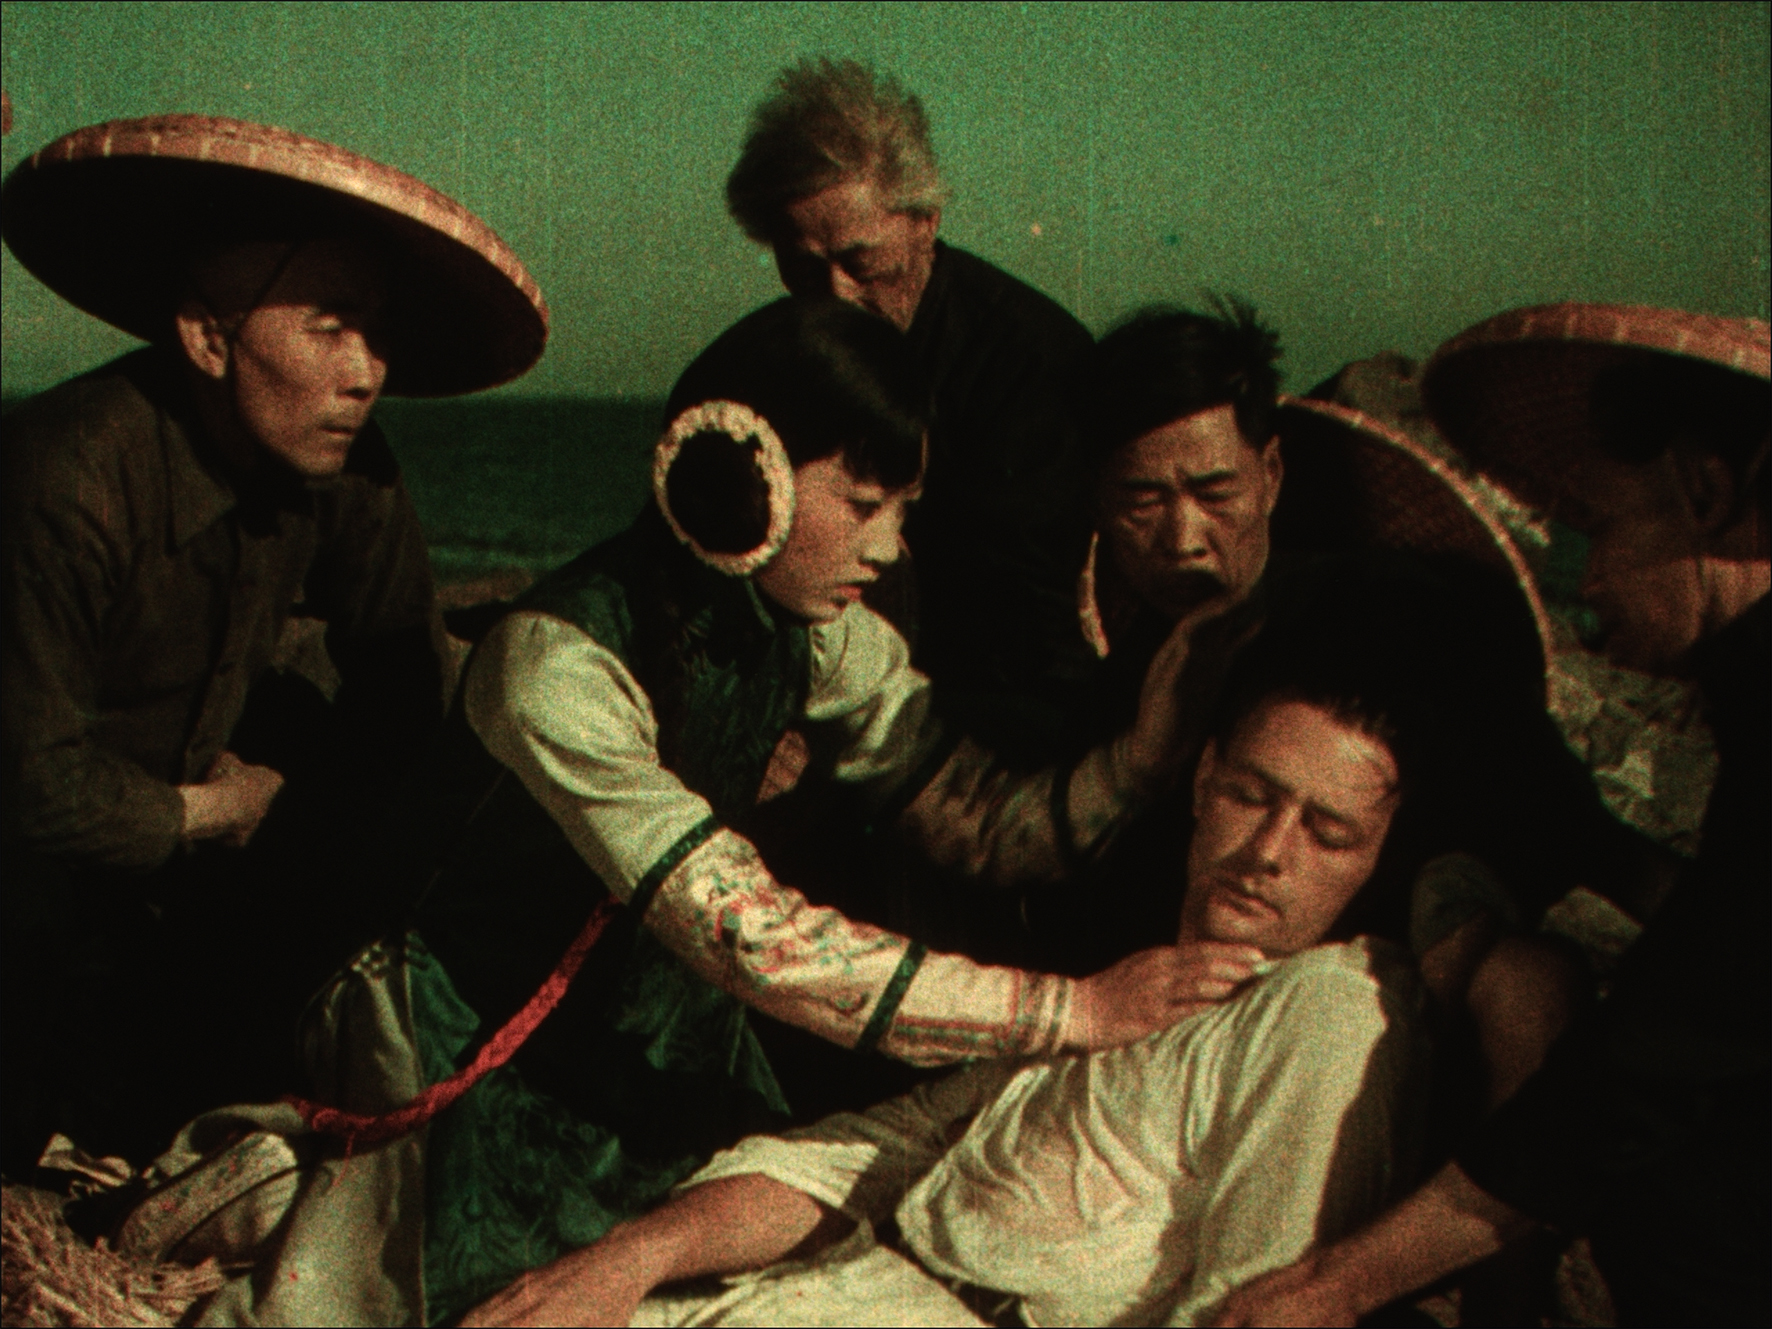 Anna May Wong in the two-strip Technicolor feature  The Toll of the Sea  (1922)